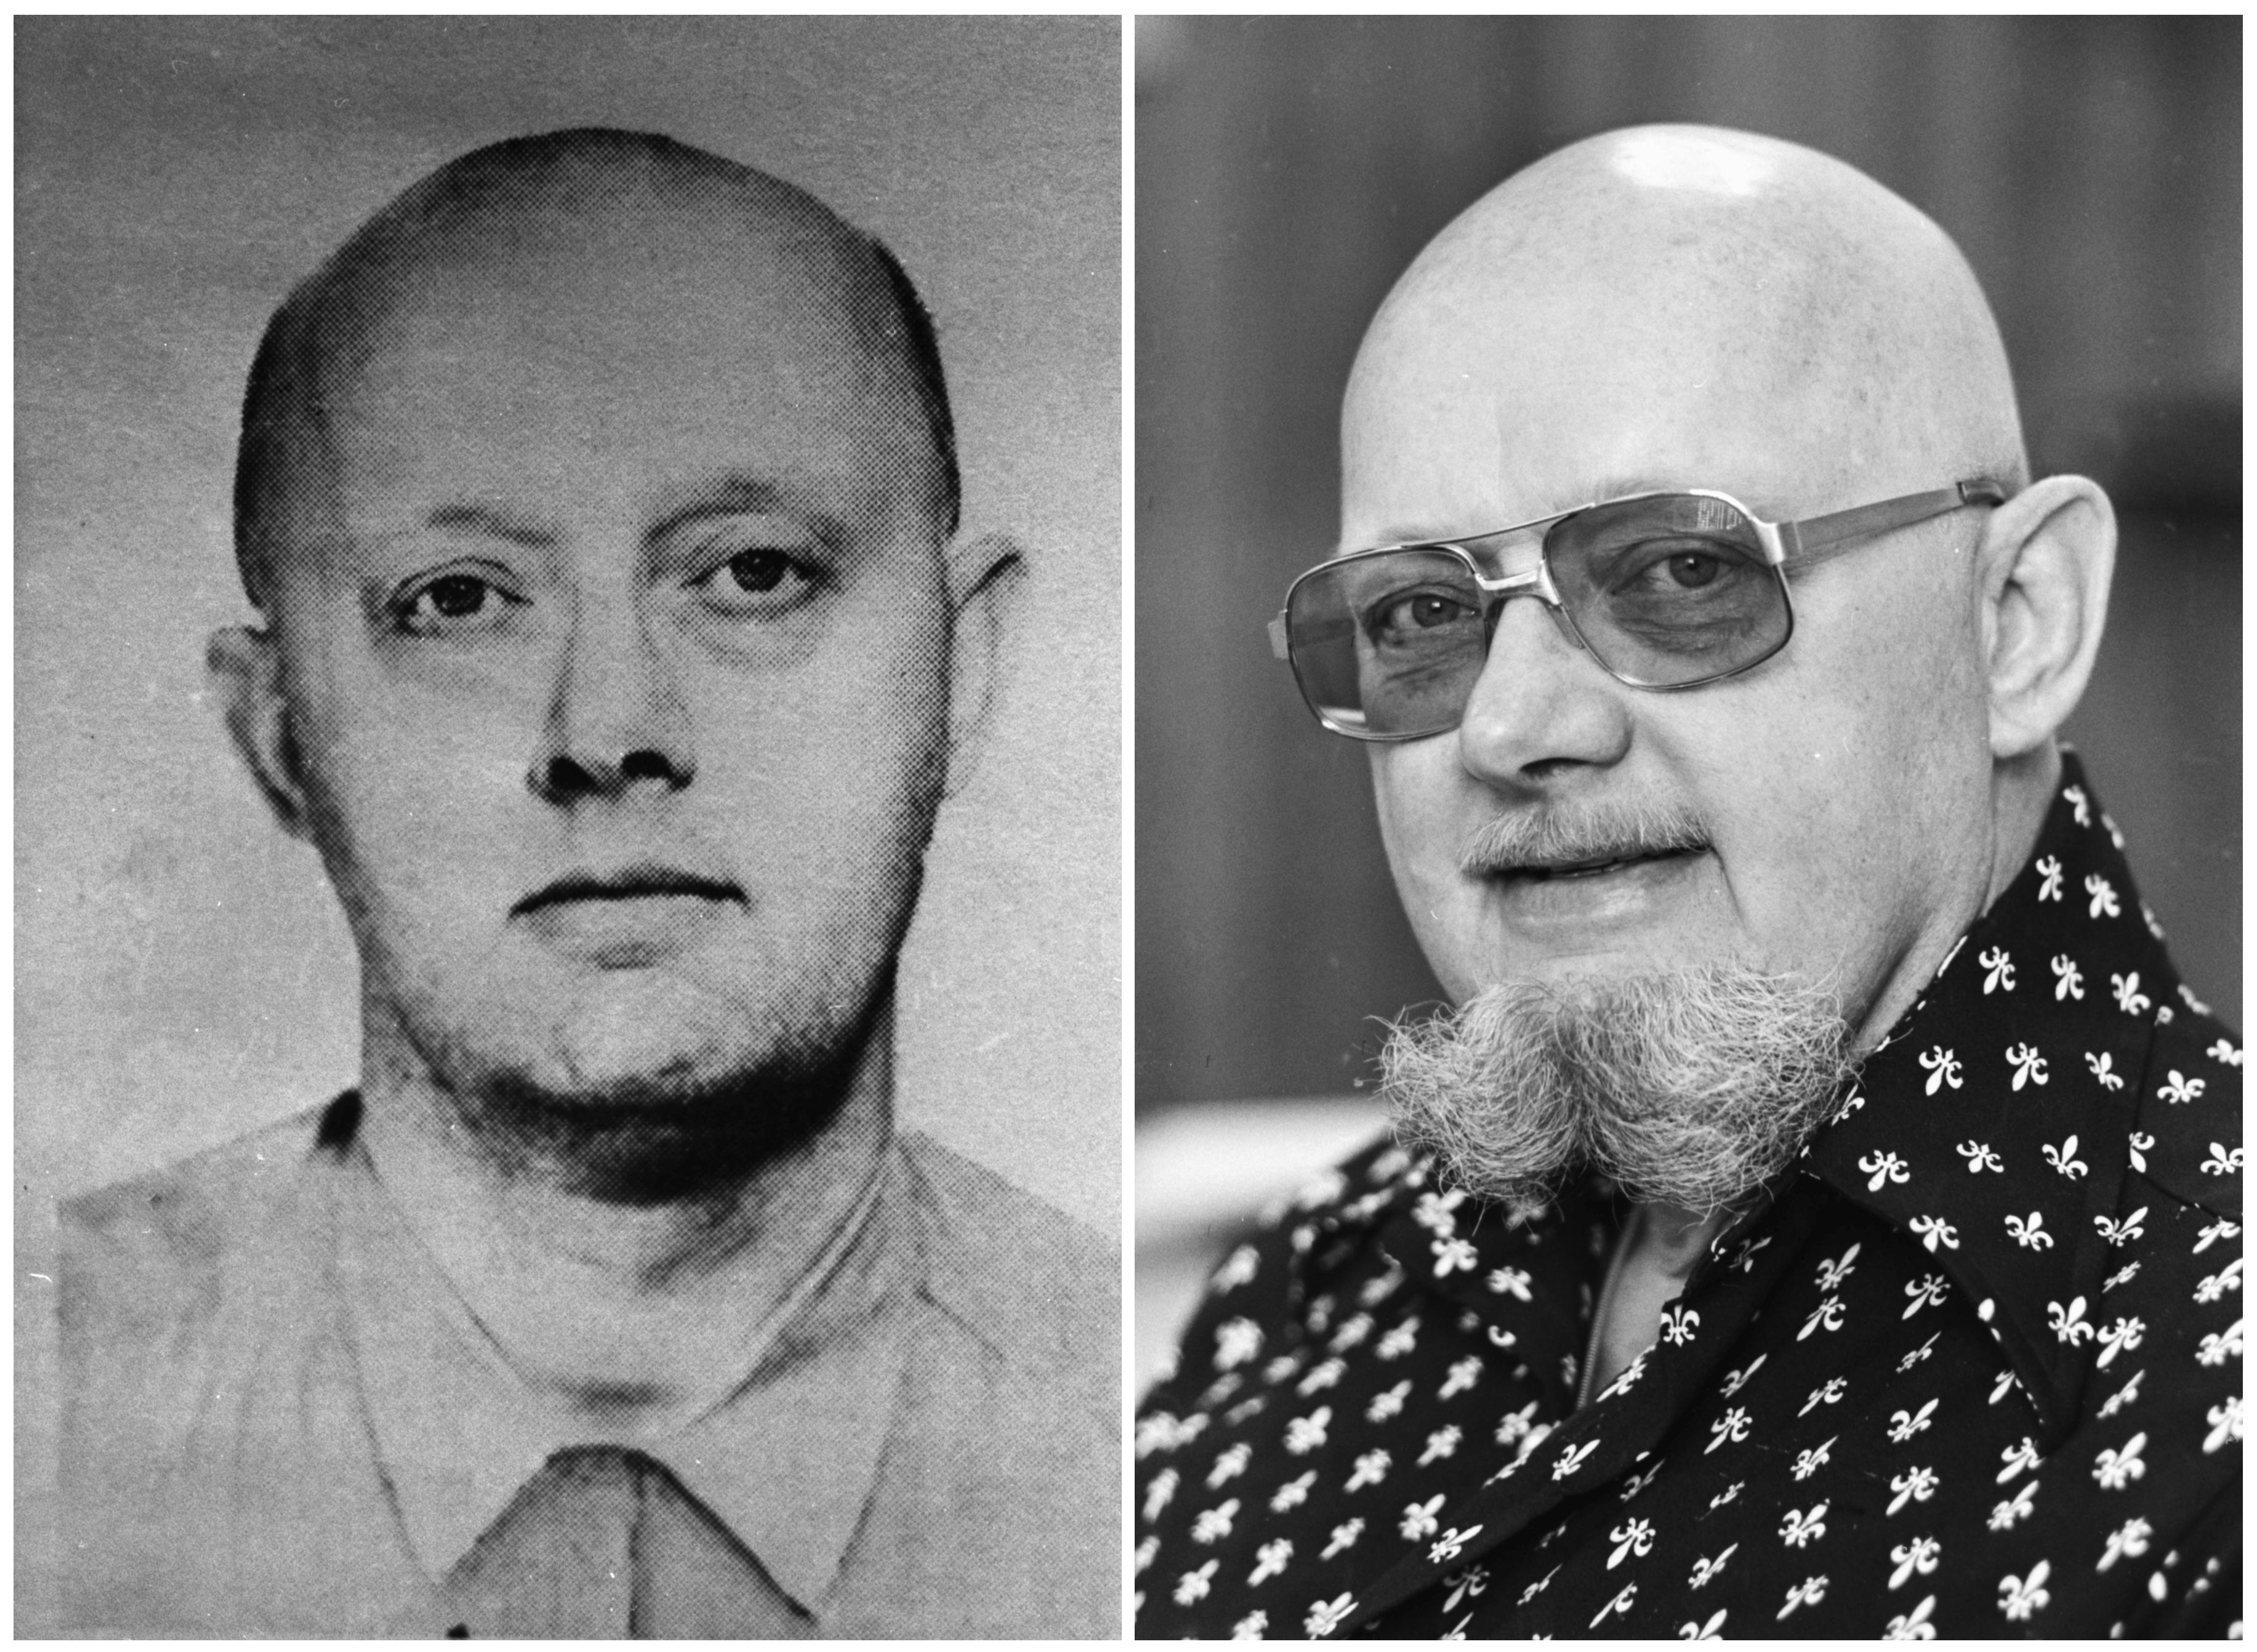 FILE - This photo combination shows an image from a 1960s FBI wanted poster of Benjamin Hoskins Paddock, left, and a 1977 file photo of Paddock, who went by the name Bruce Ericksen, when he was on the lam in Lane County, Oregon, following his escape from a federal prison in Texas, where he had been serving time for a string of bank robberies. Paddock's son, Stephen Paddock, was the gunman who opened fire on a country music festival in Las Vegas on Sunday, Oct. 1, 2017, killing dozens and wounding hundreds. (FBI and Wayne Eastburn/The Register-Guard via AP, File)